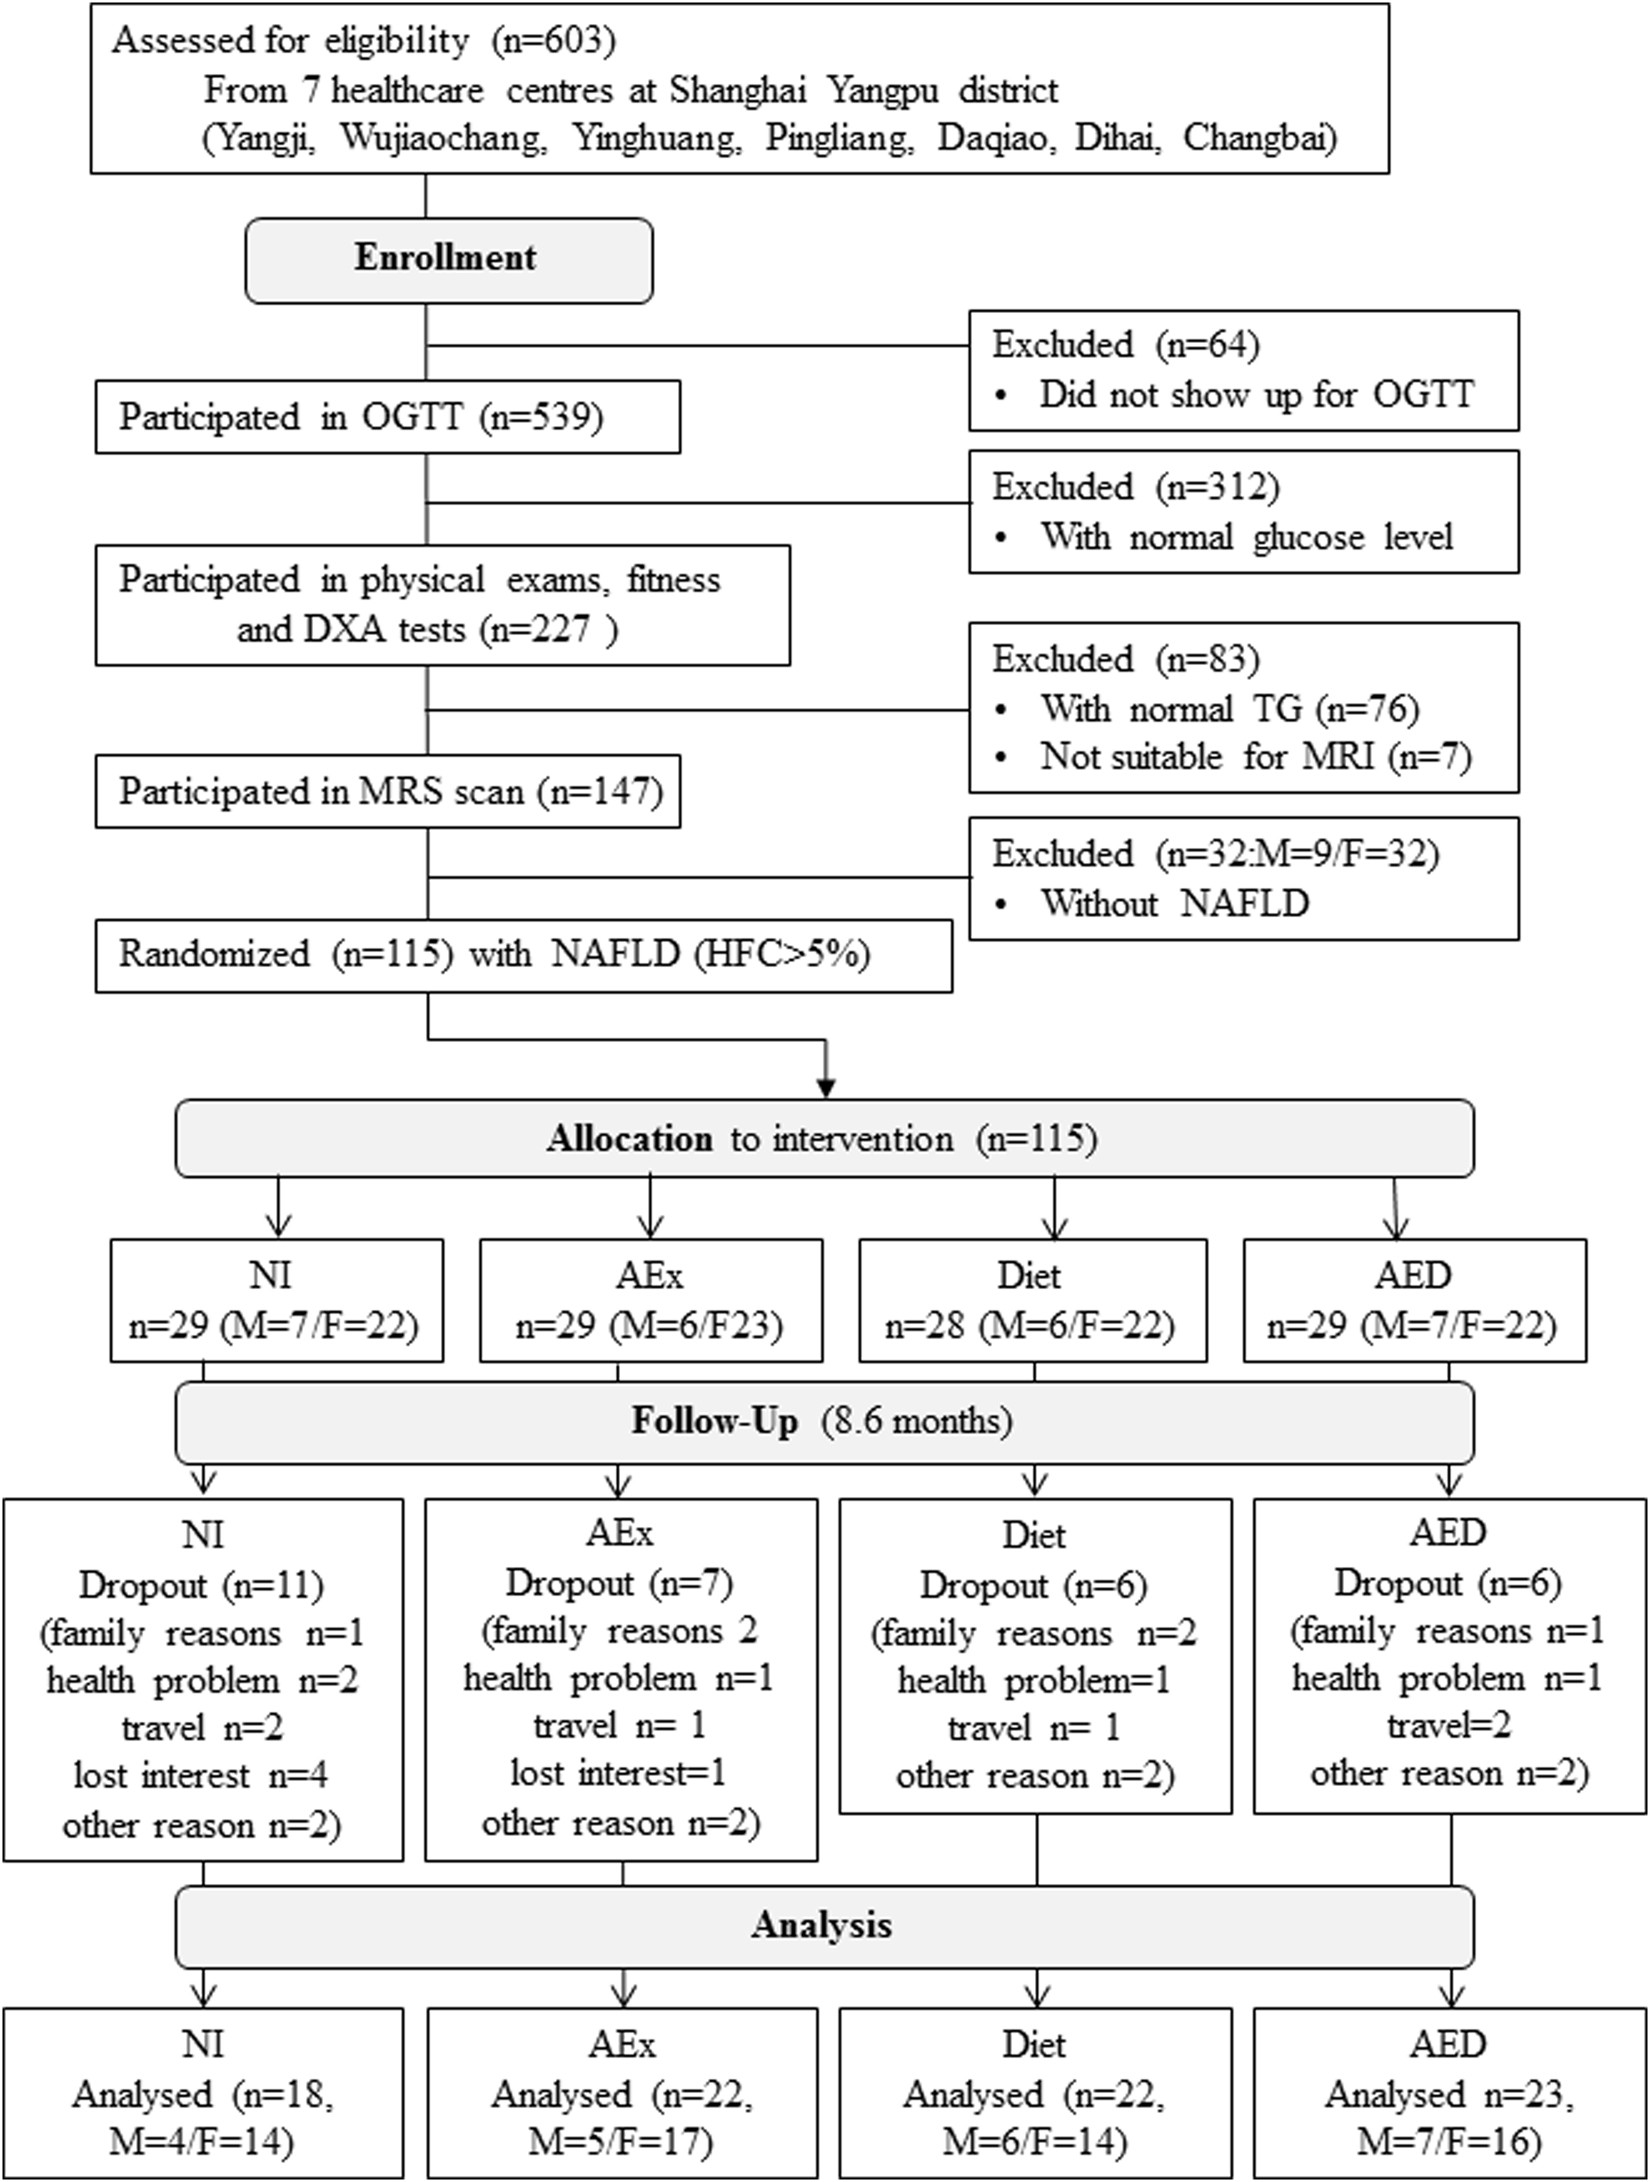 Effect of aerobic exercise and diet on liver fat in pre